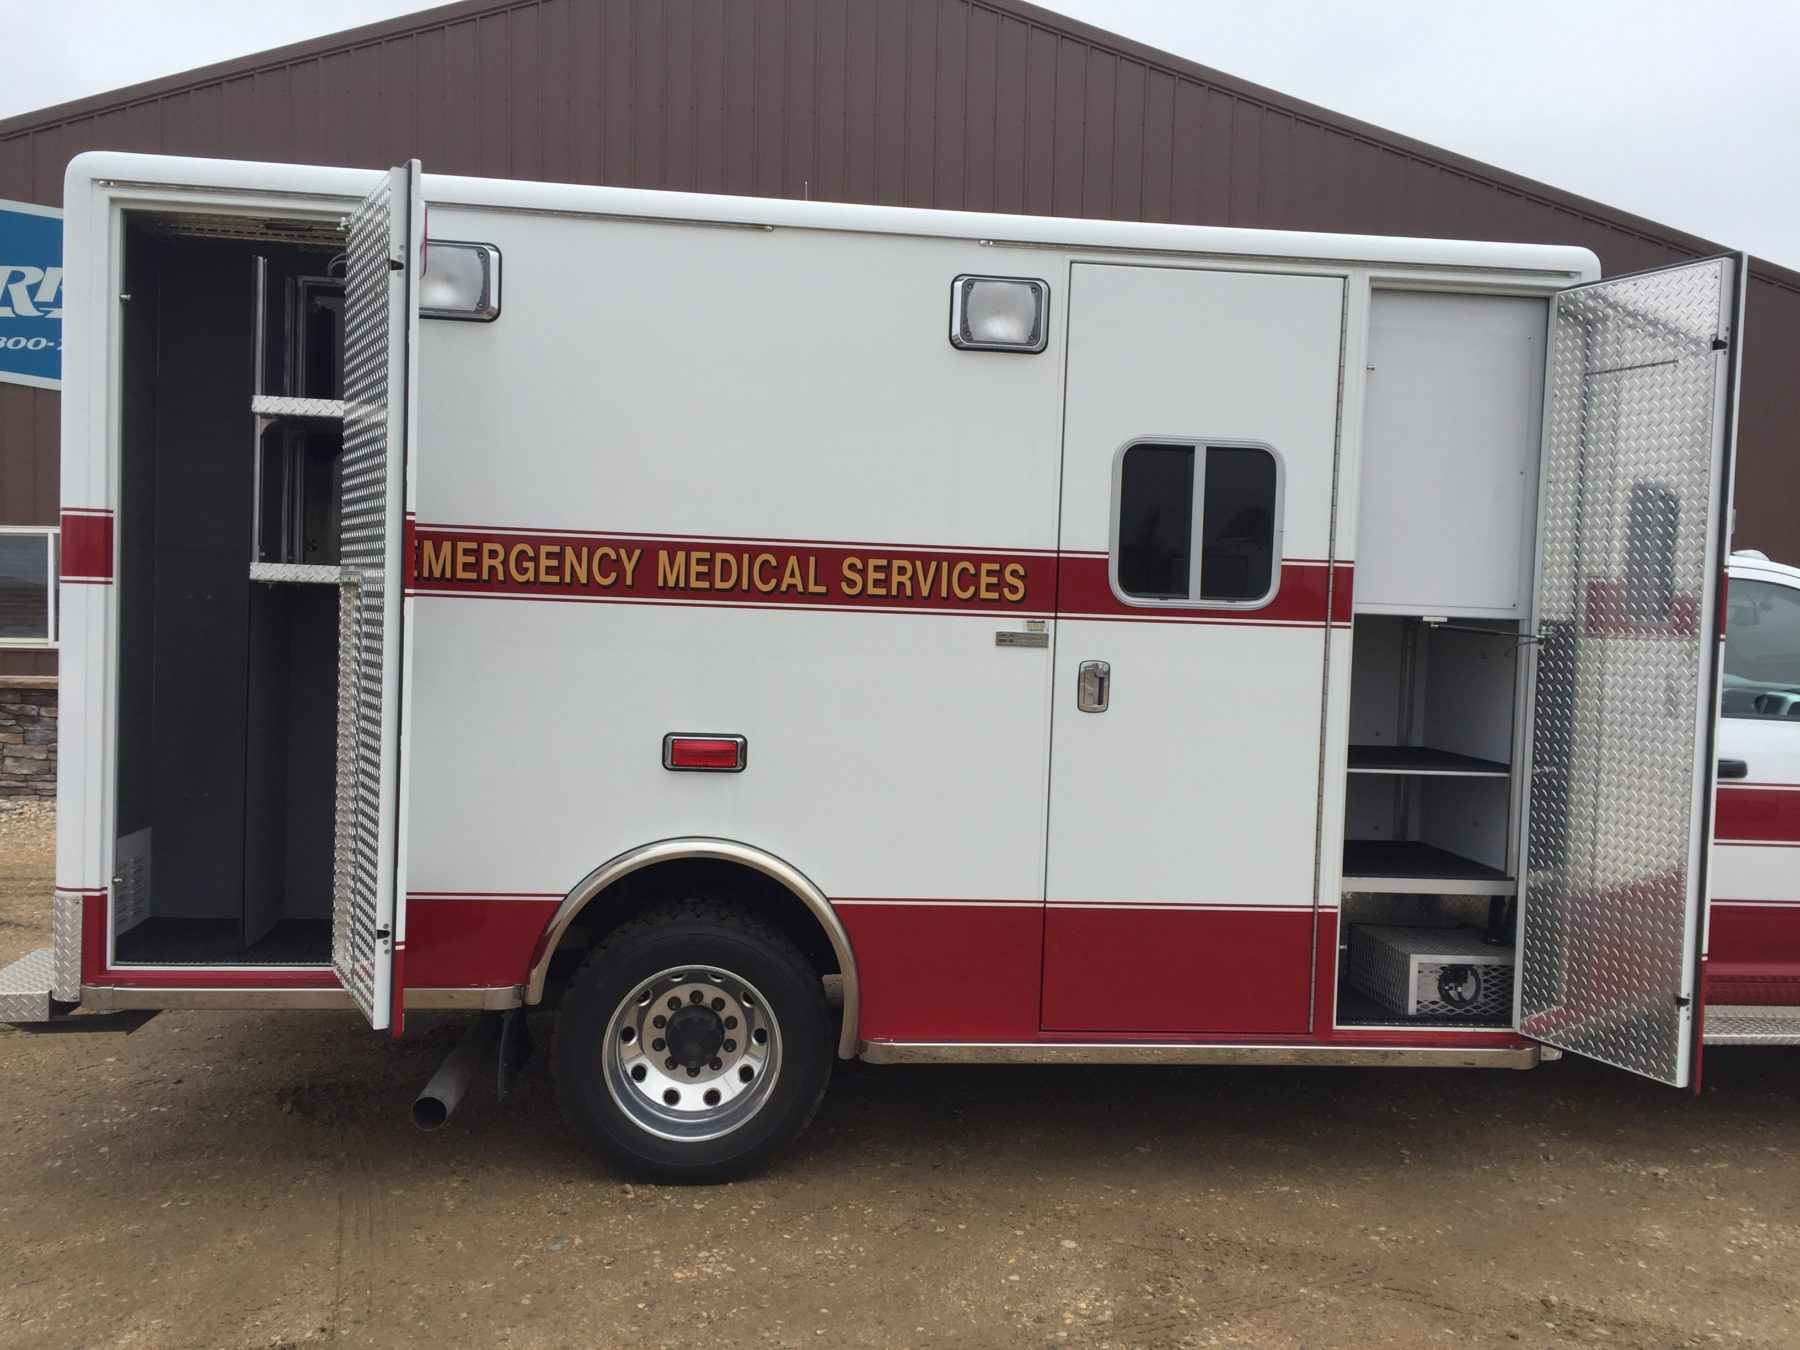 2012 Dodge 4500 Heavy Duty Ambulance For Sale – Picture 5